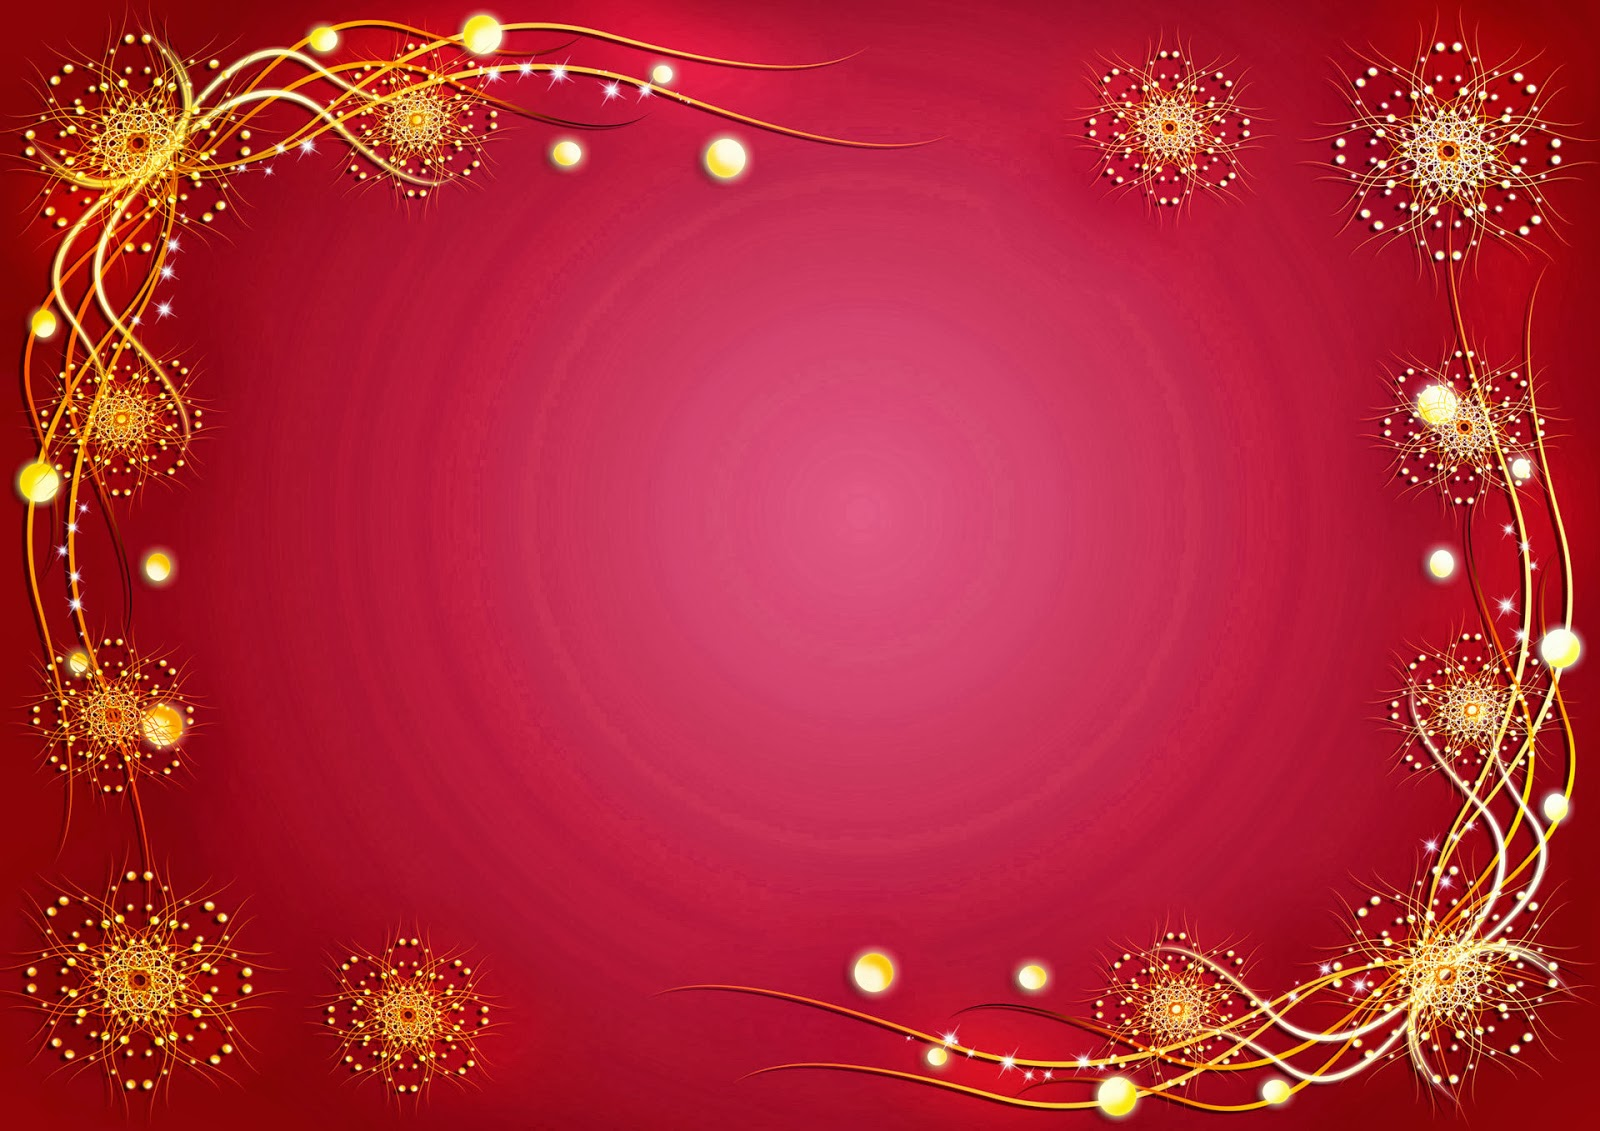 HD Wallpapers Desktop: Red Background HD DeskTop Wallpapers